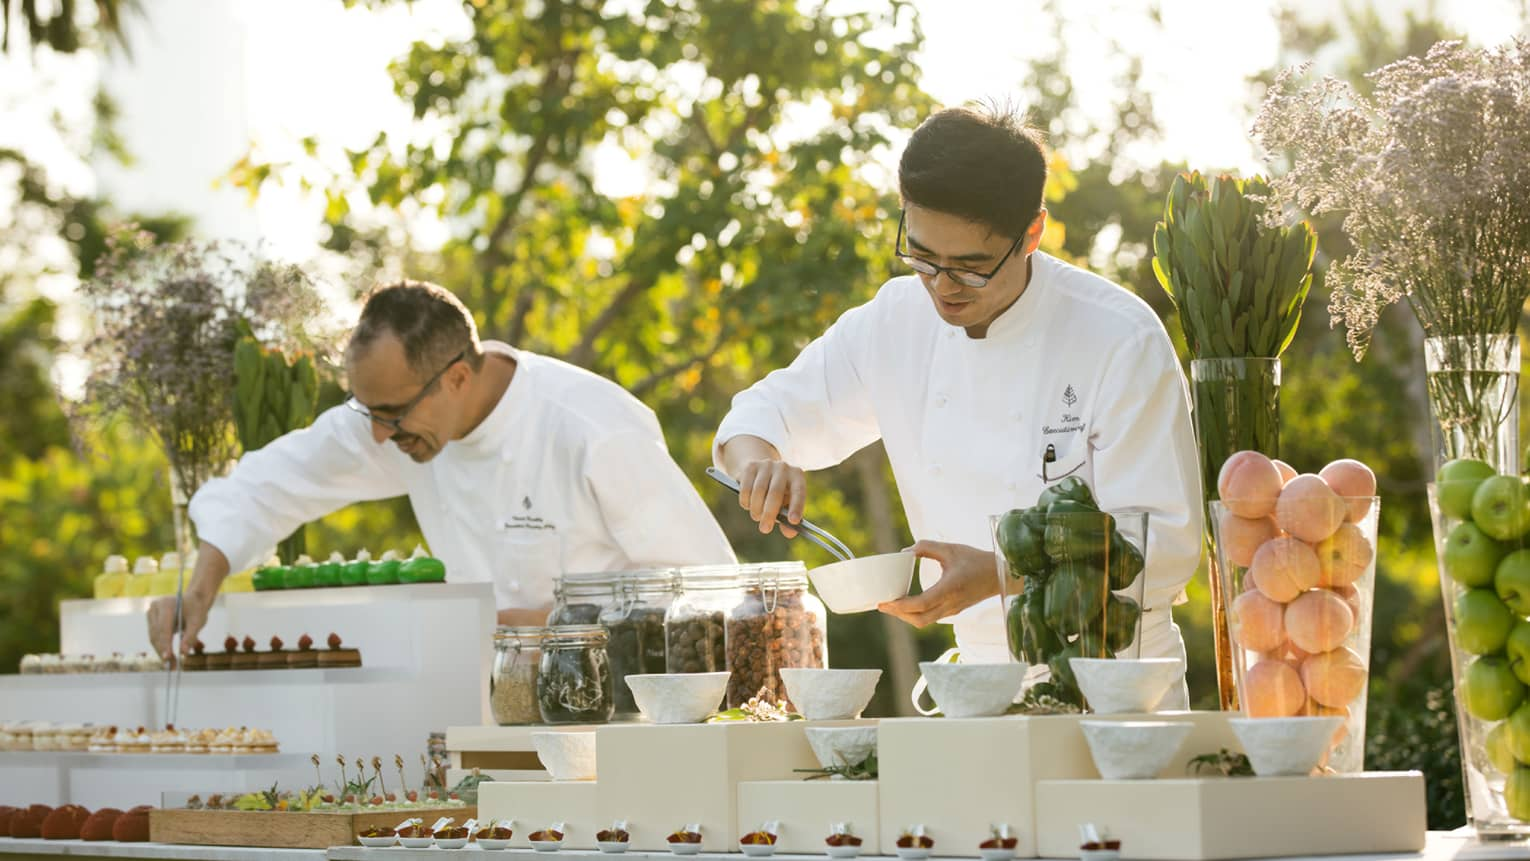 Two chefs arrange desserts on outdoor buffet